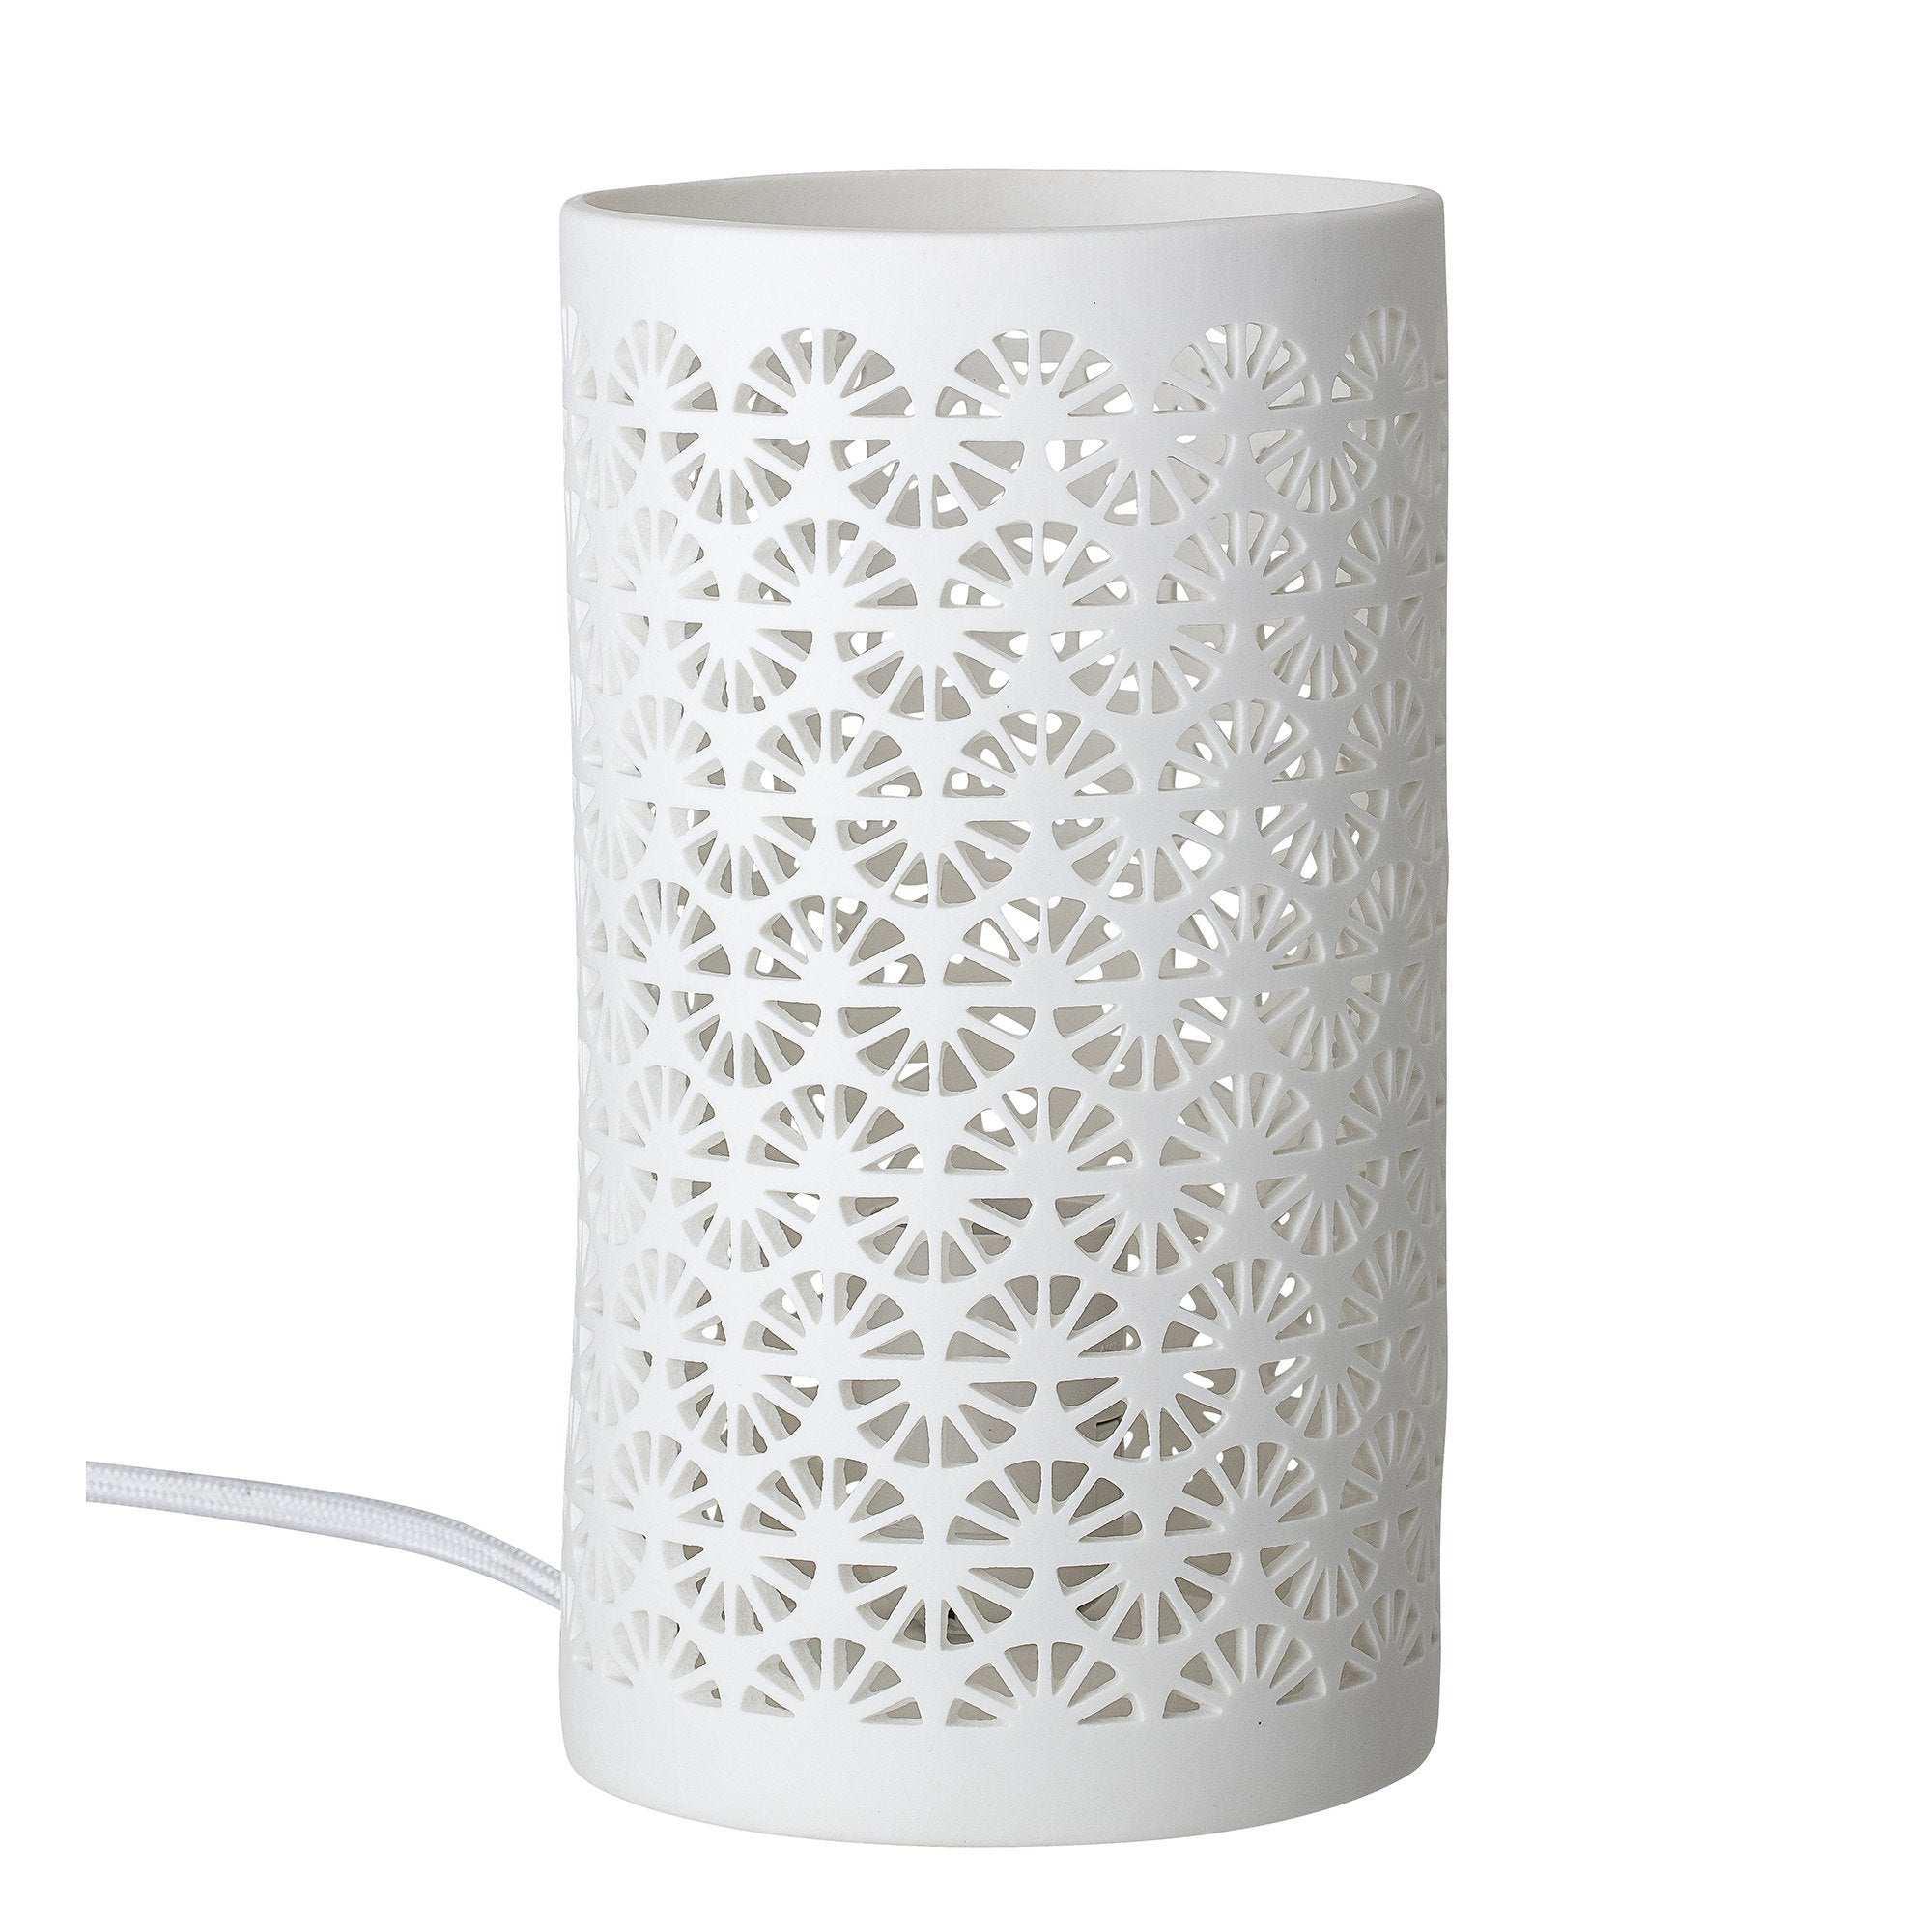 White Porcelain Patterned Table Lamp - BouChic